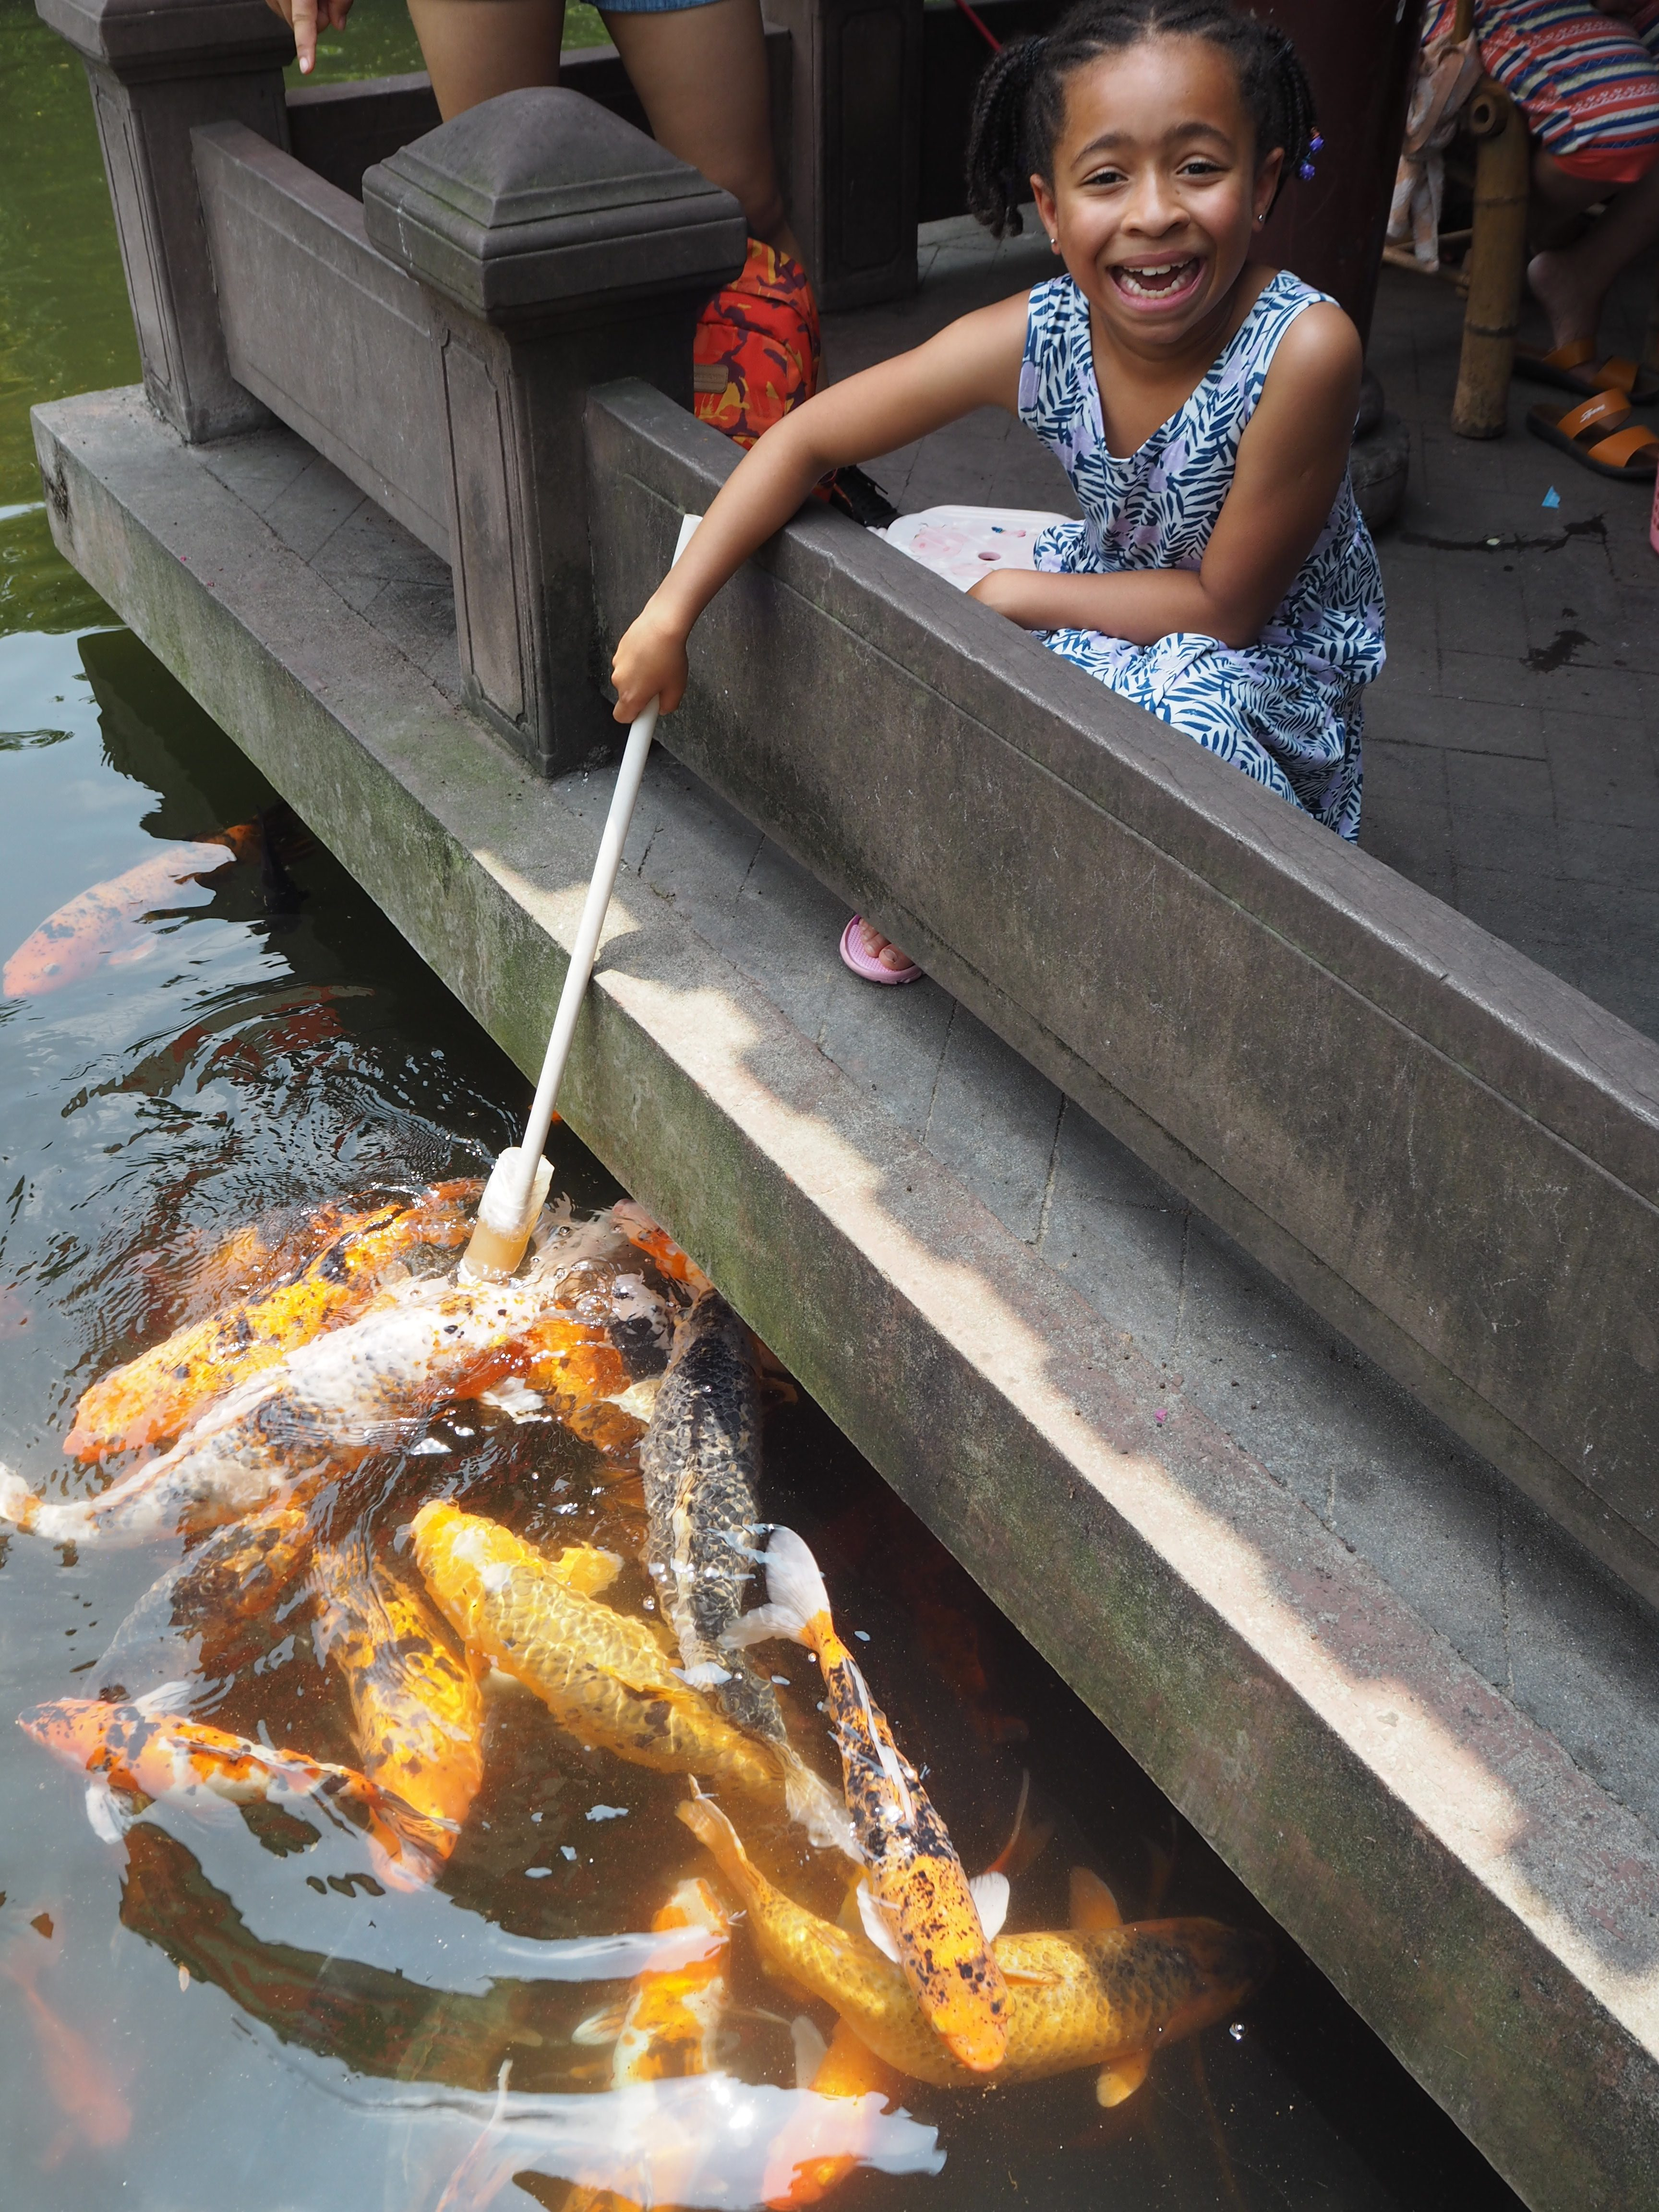 Bottle feeding koi carp in the People's Park